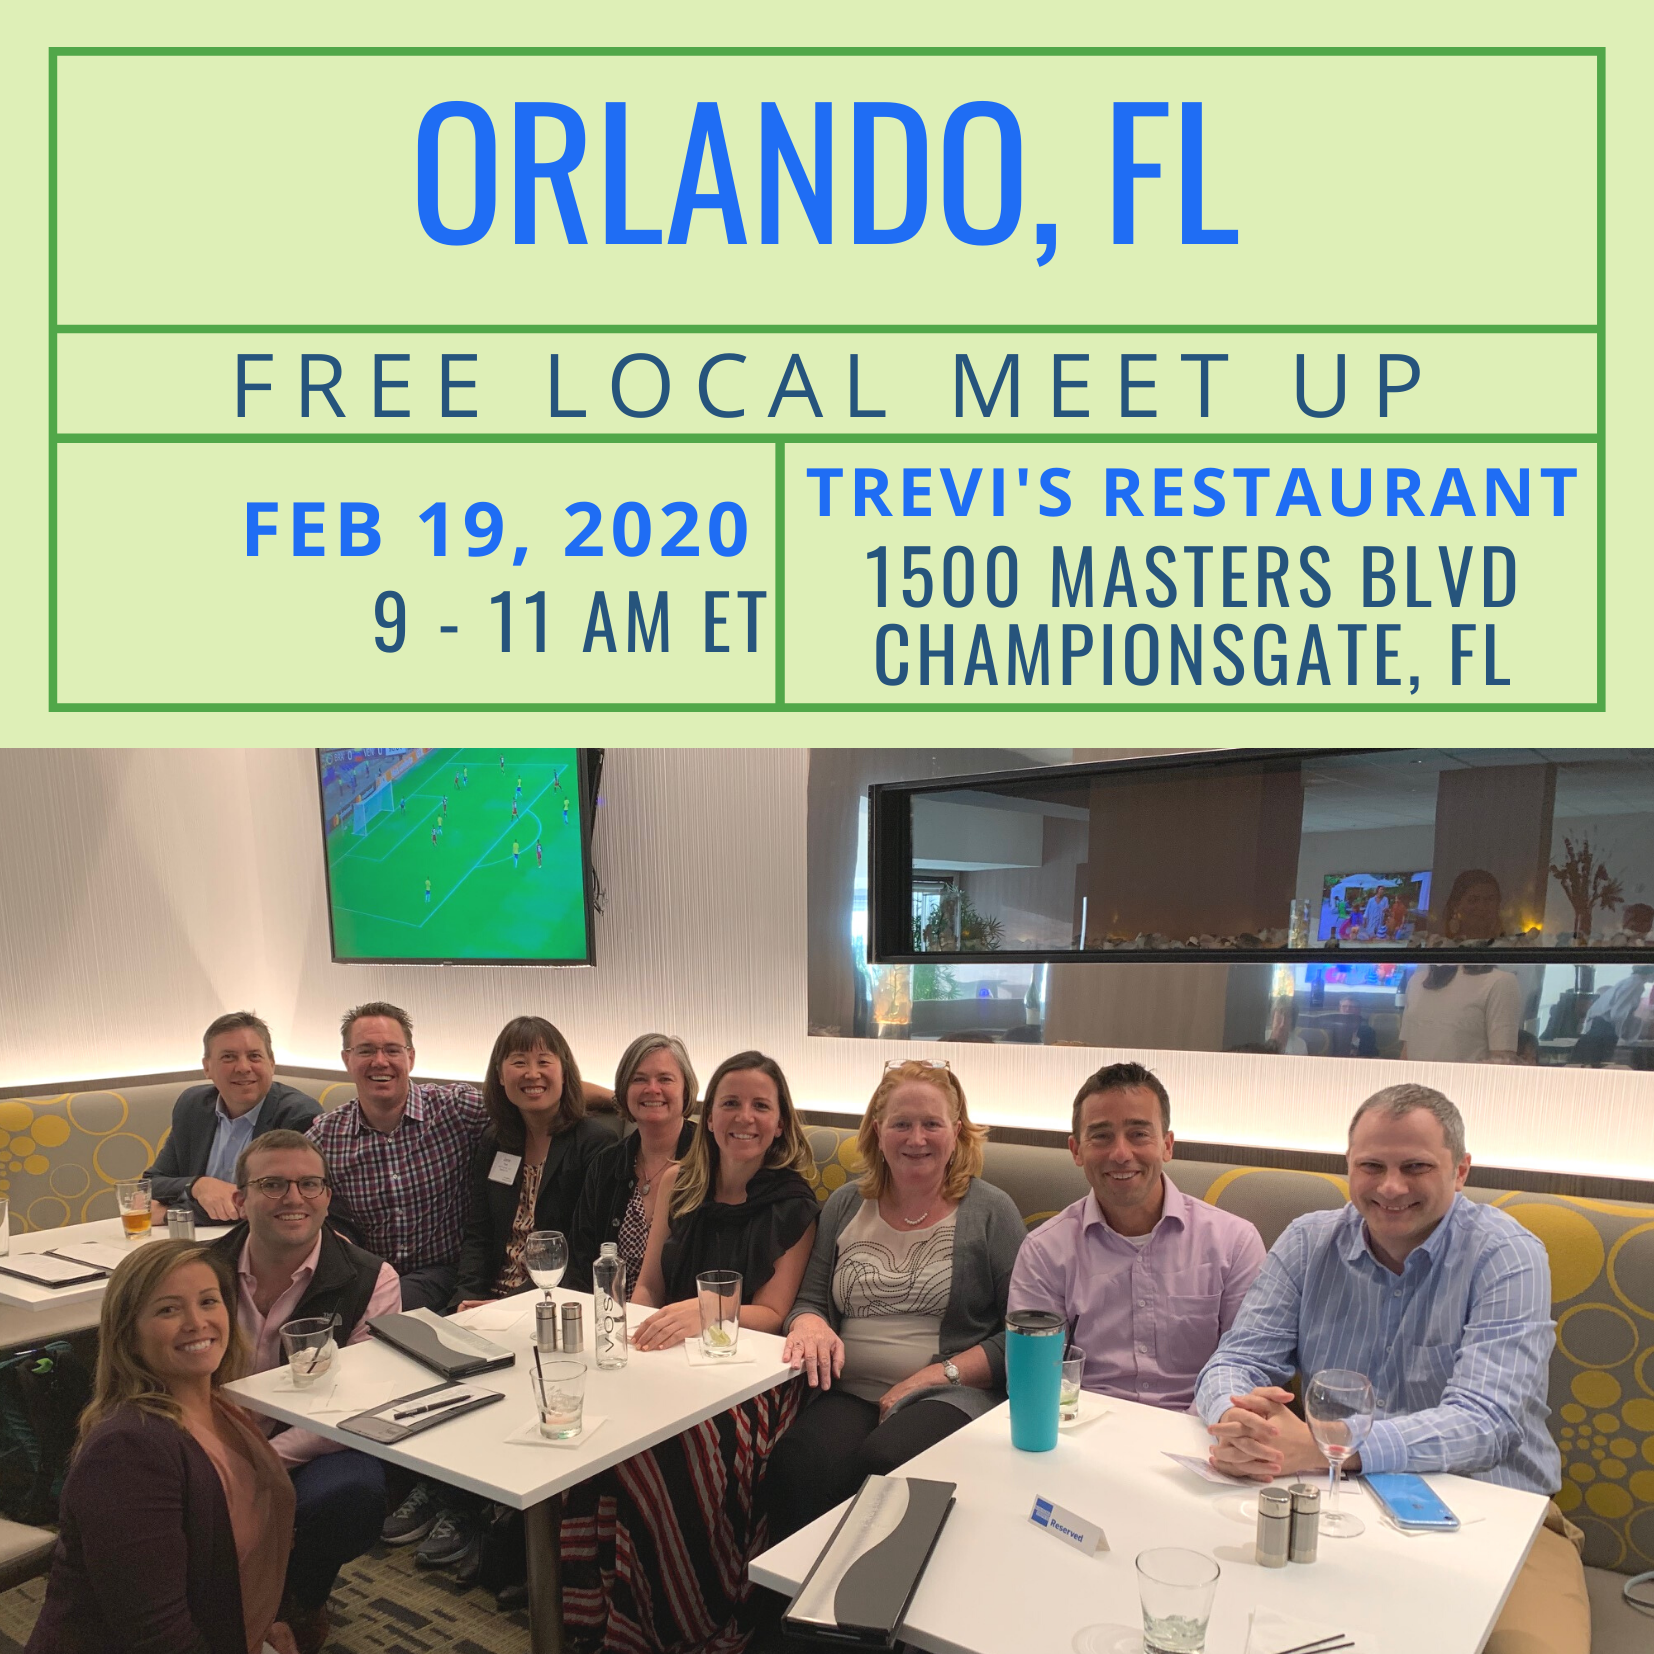 Free Local Meet-Up in Orlando, FL on February 19